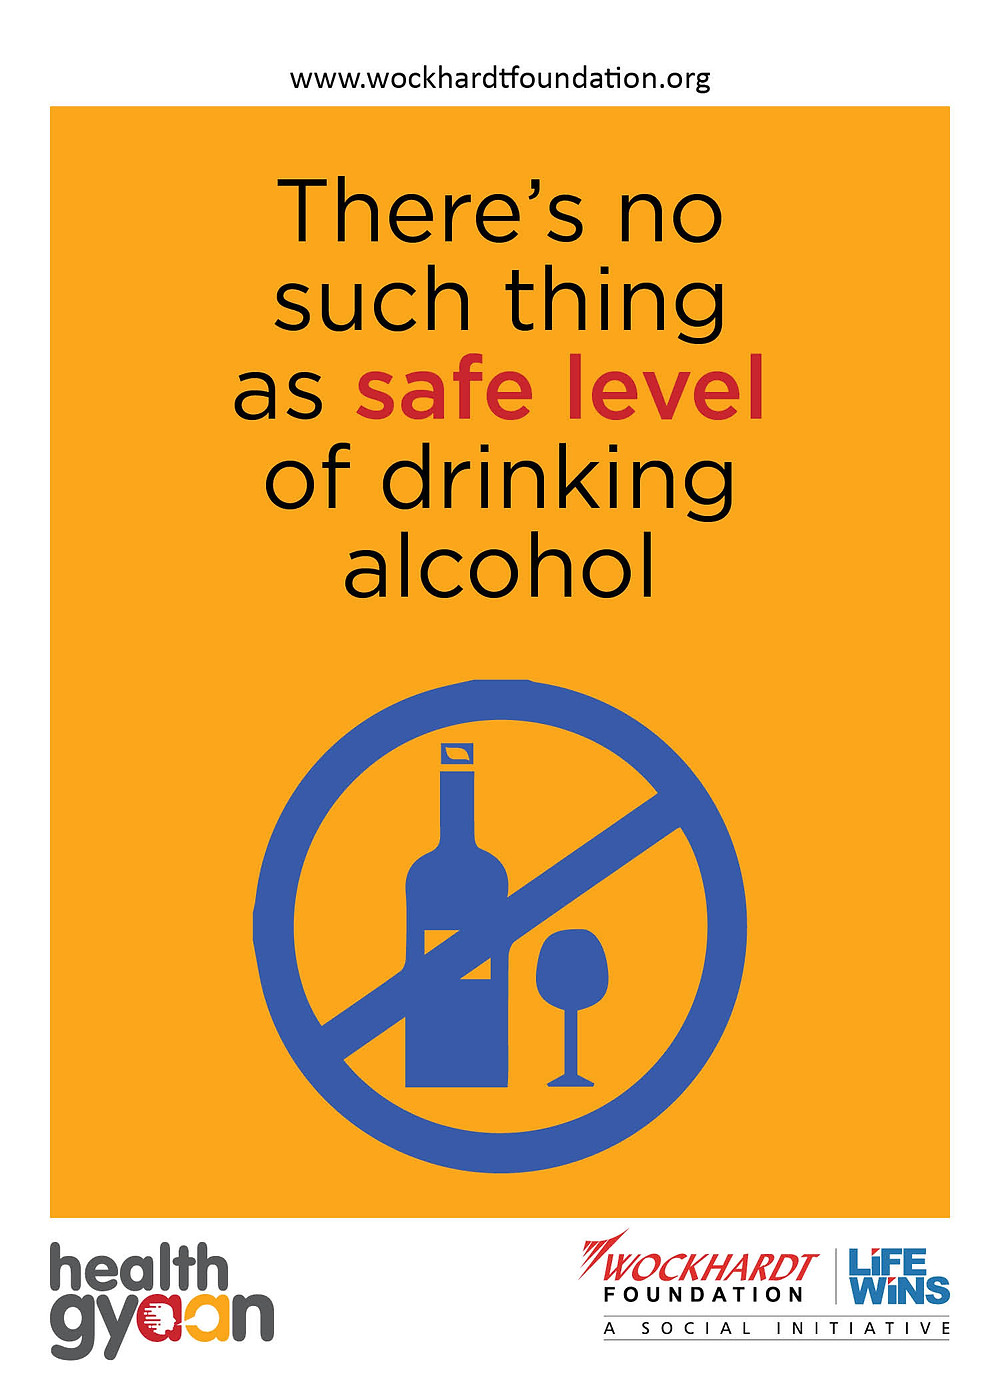 safe level of drinking alcohol